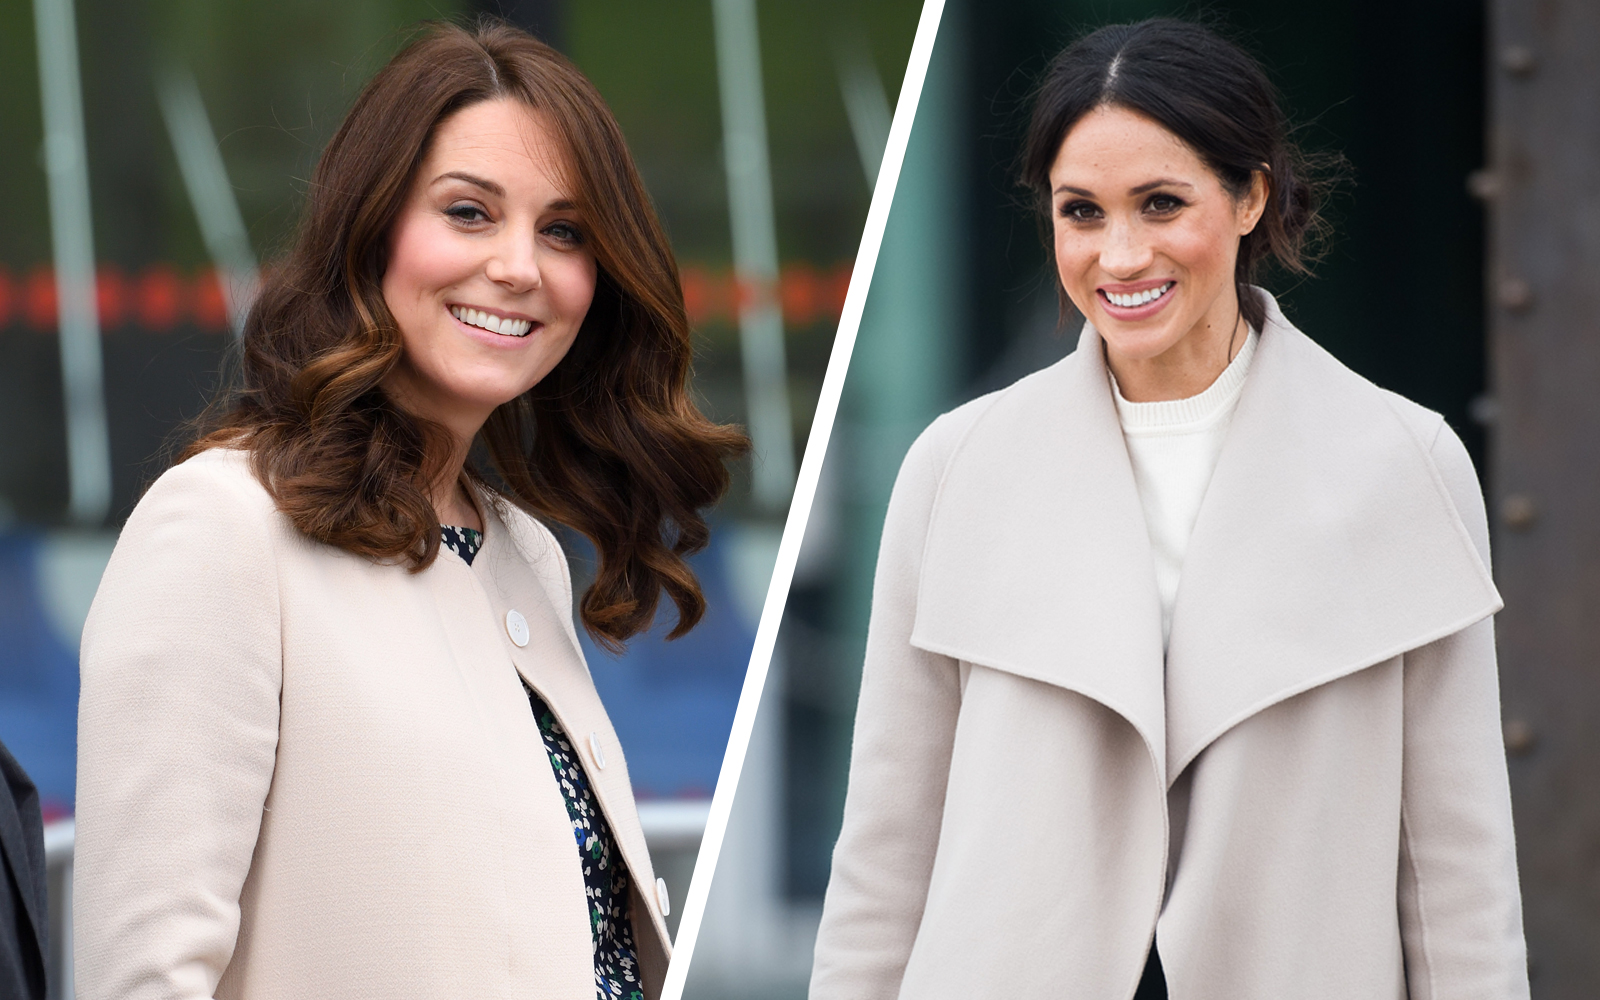 Duchess Catherine of Cambridge and Meghan Markle